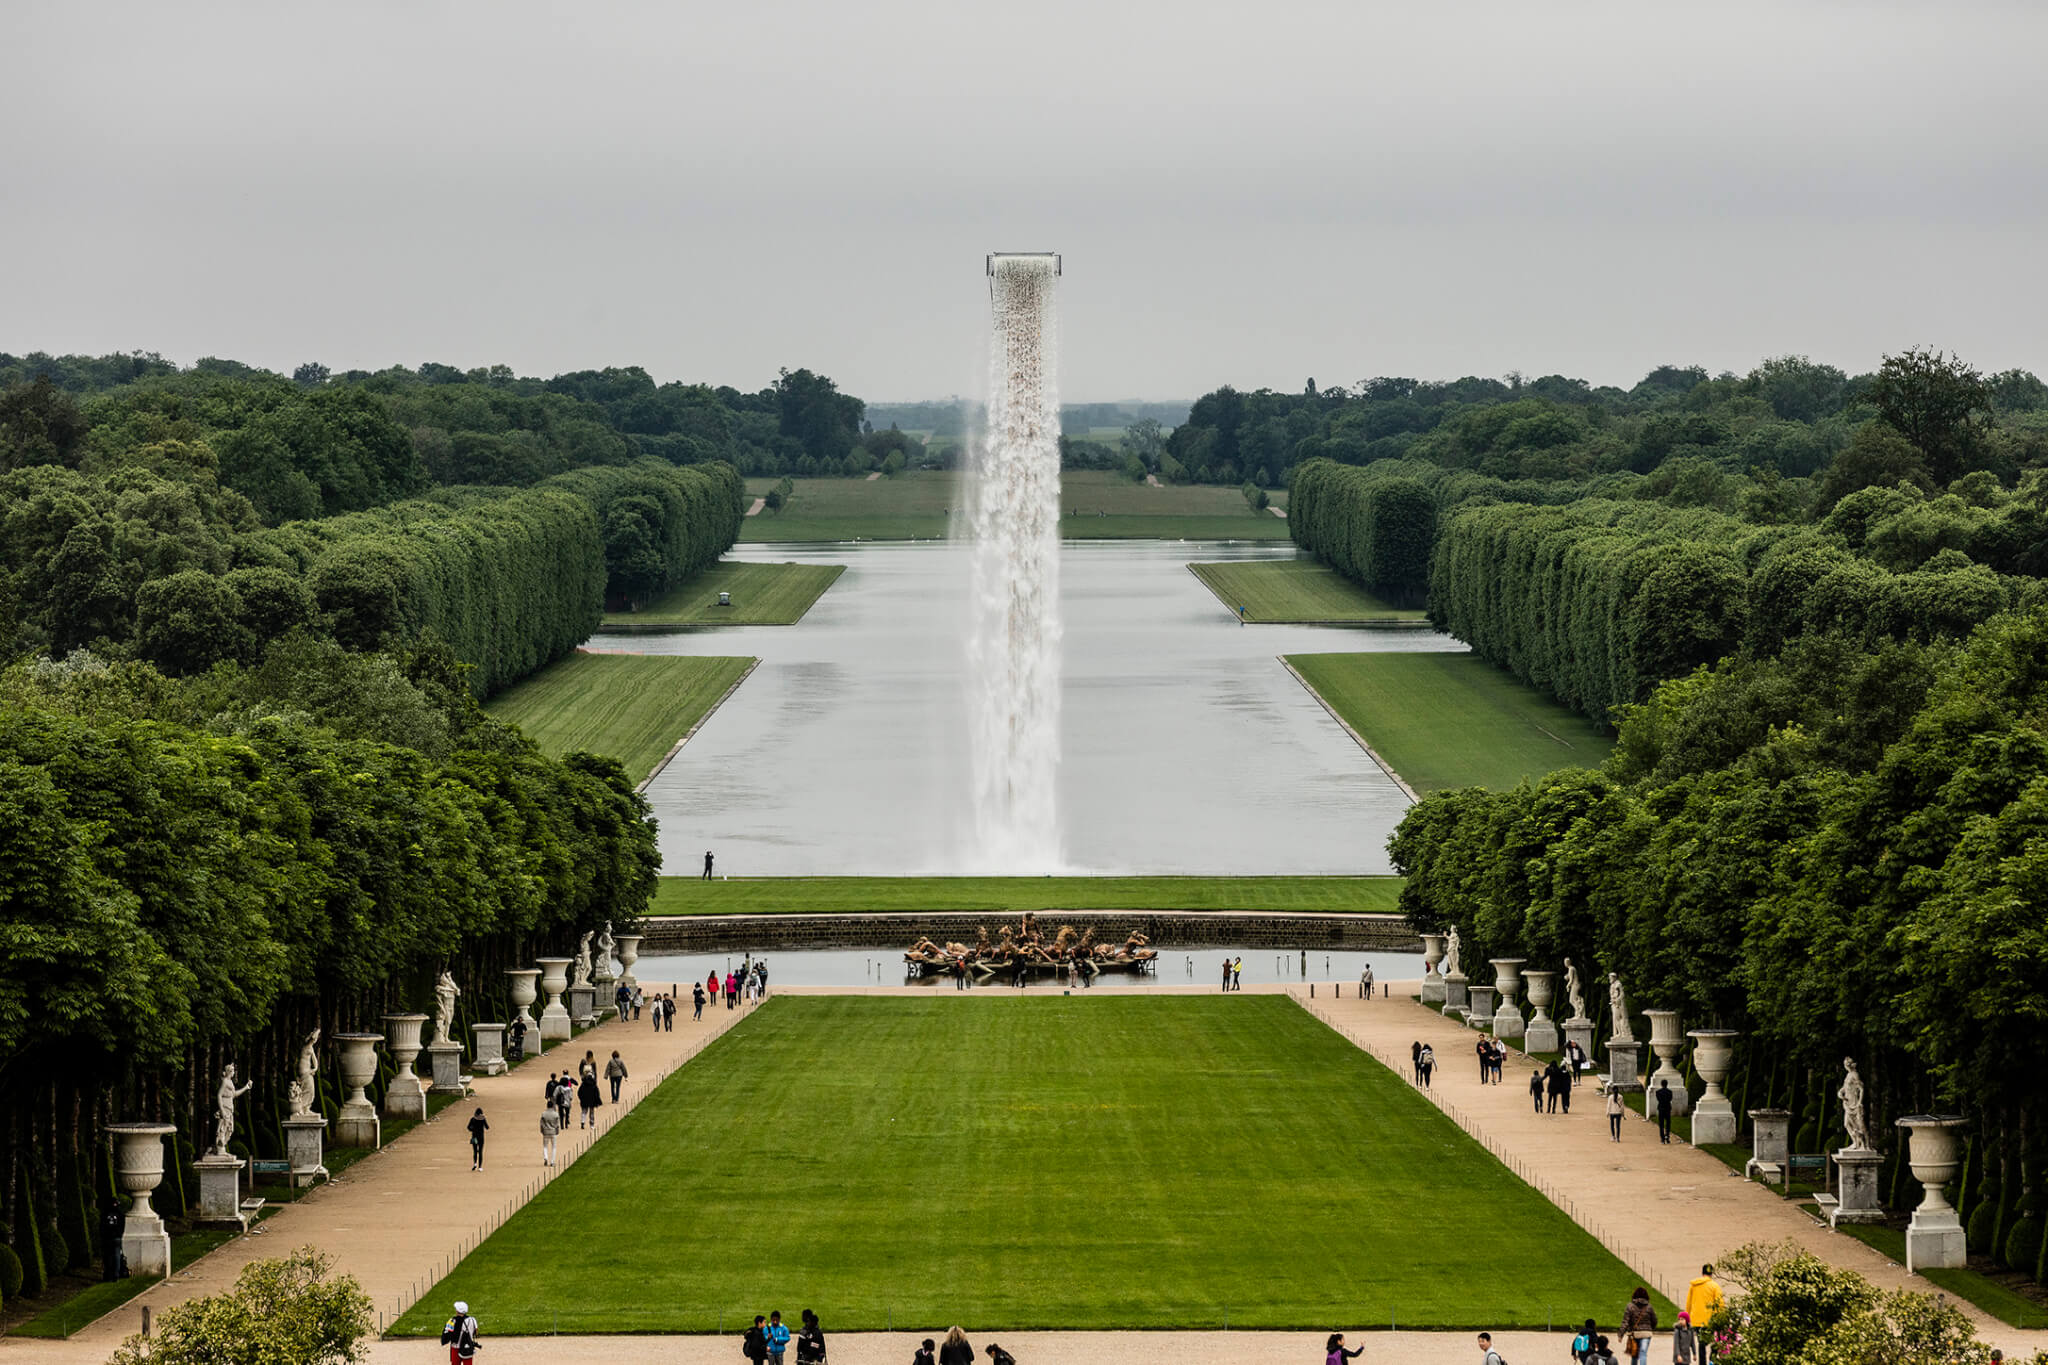 Pieces created by Olafur Eliasson in Versailles